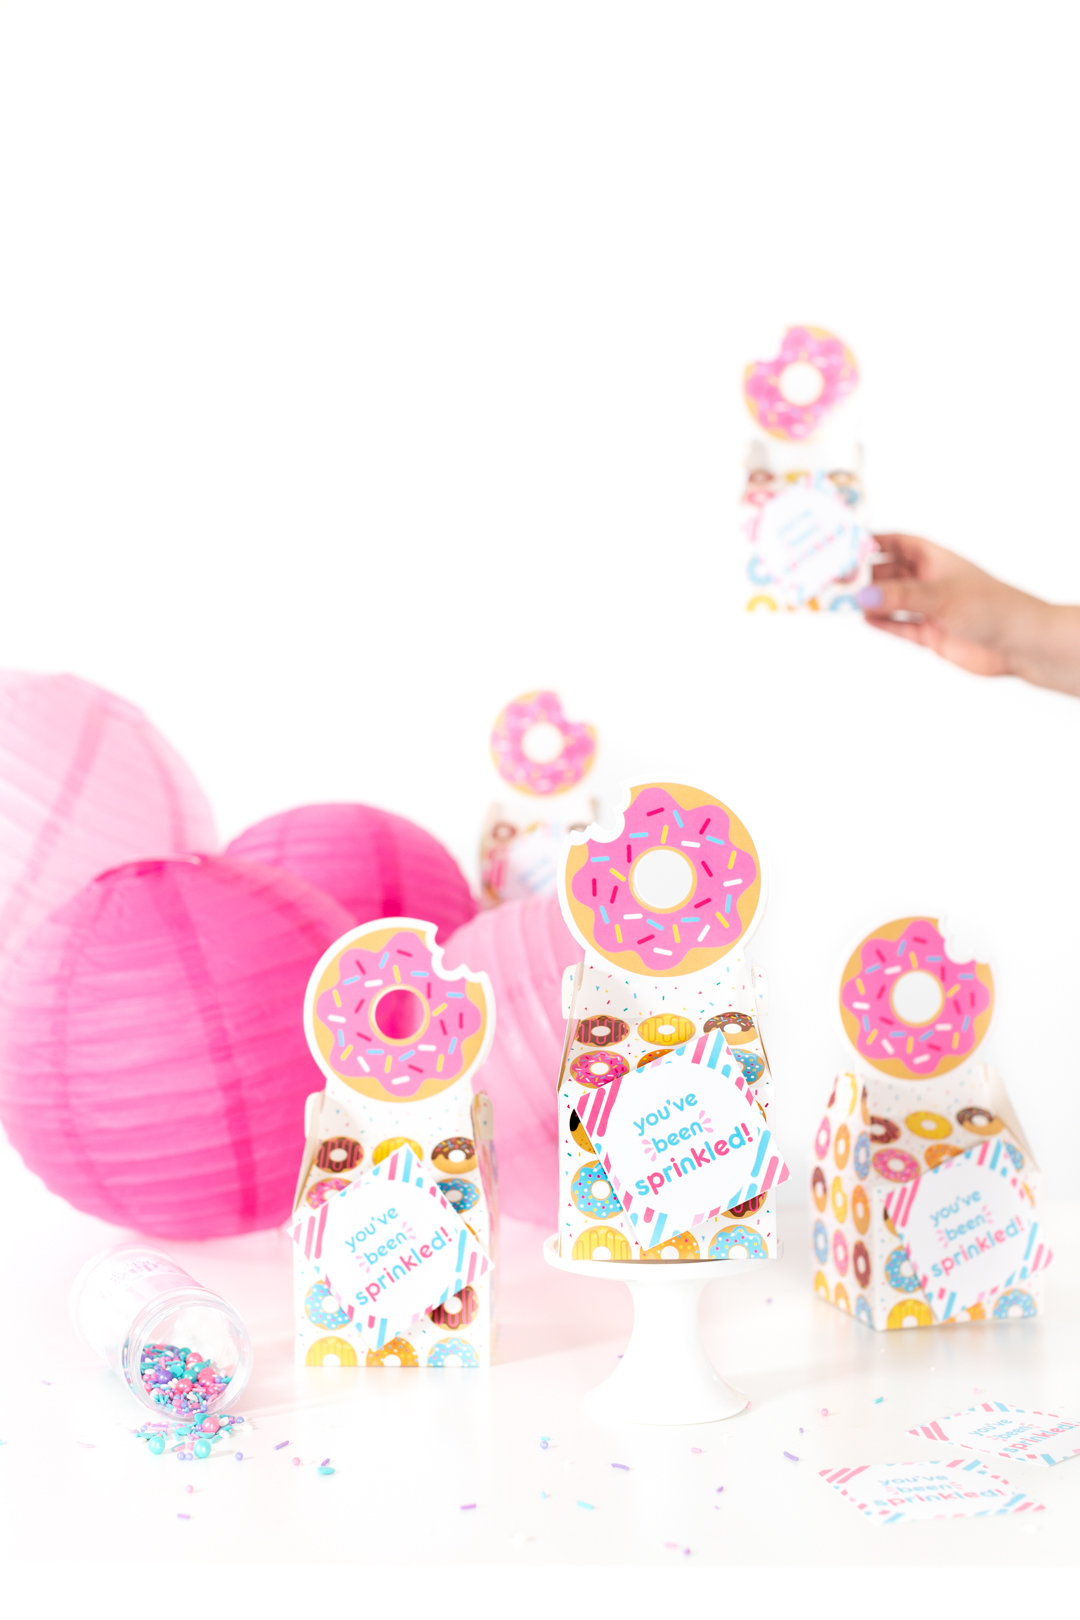 donut gift ideas for donut lovers. cute little tiny donut favor boxes for gifting donuts